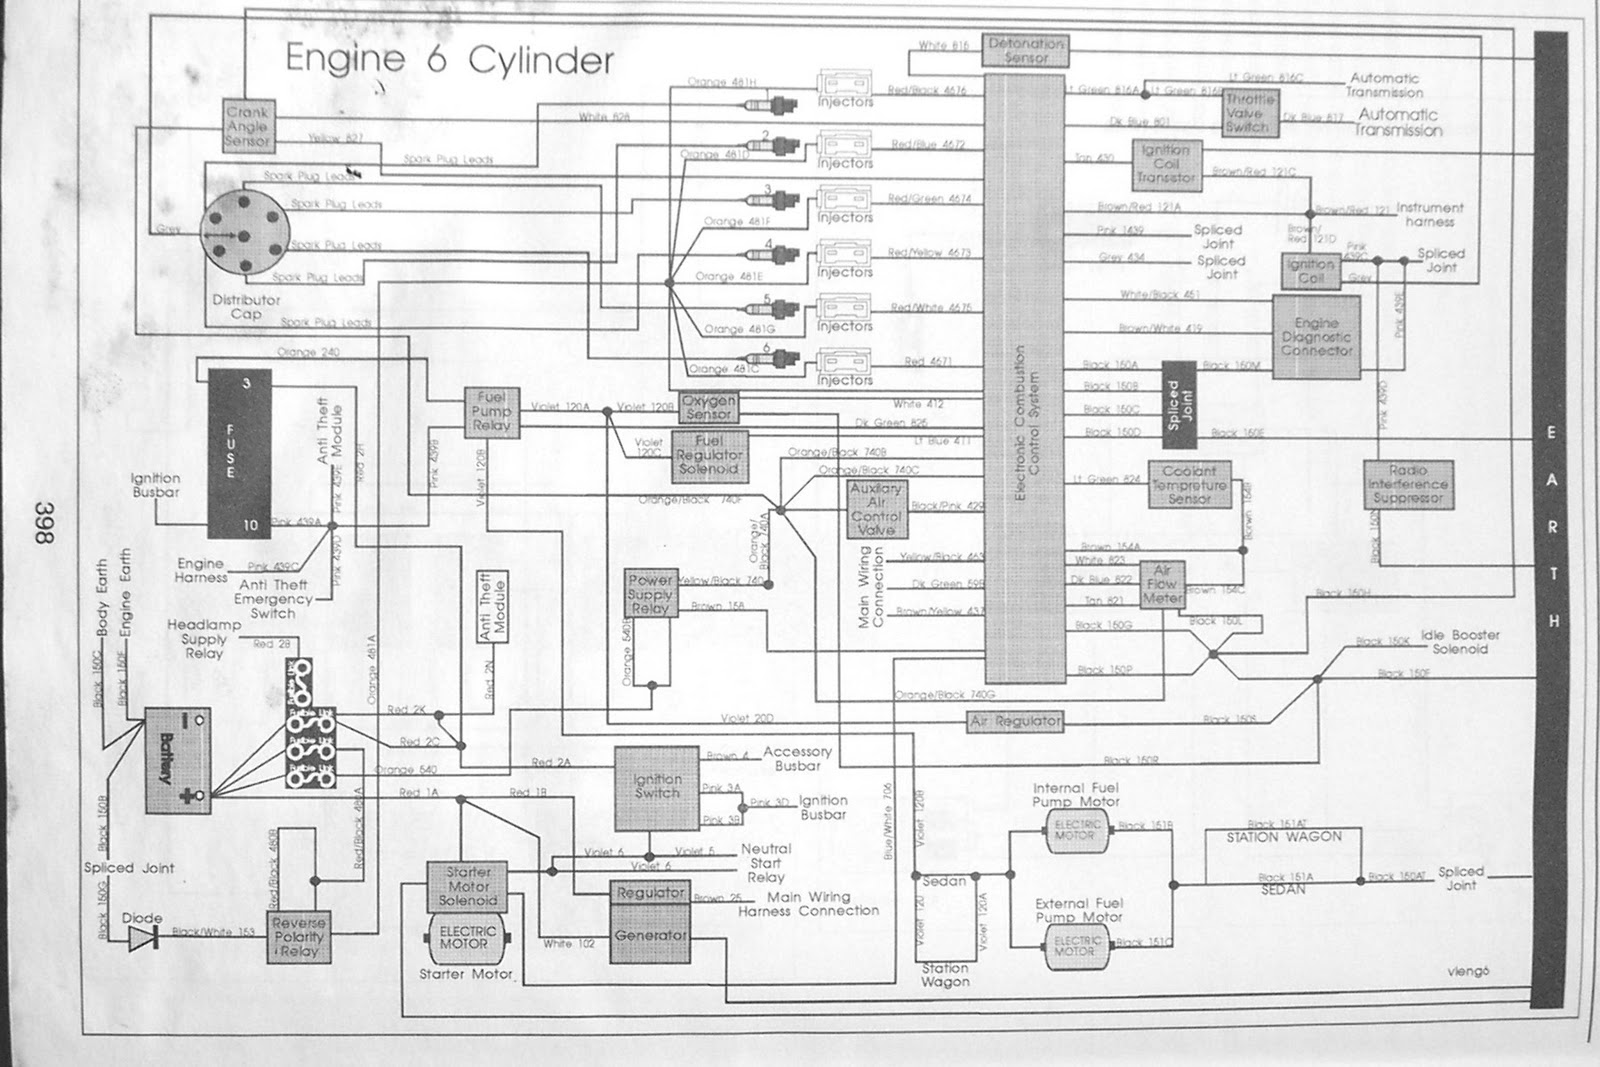 vl wiring diagram wiring diagram blogs toyota alternator diagram vl alternator wiring diagram [ 1600 x 1067 Pixel ]